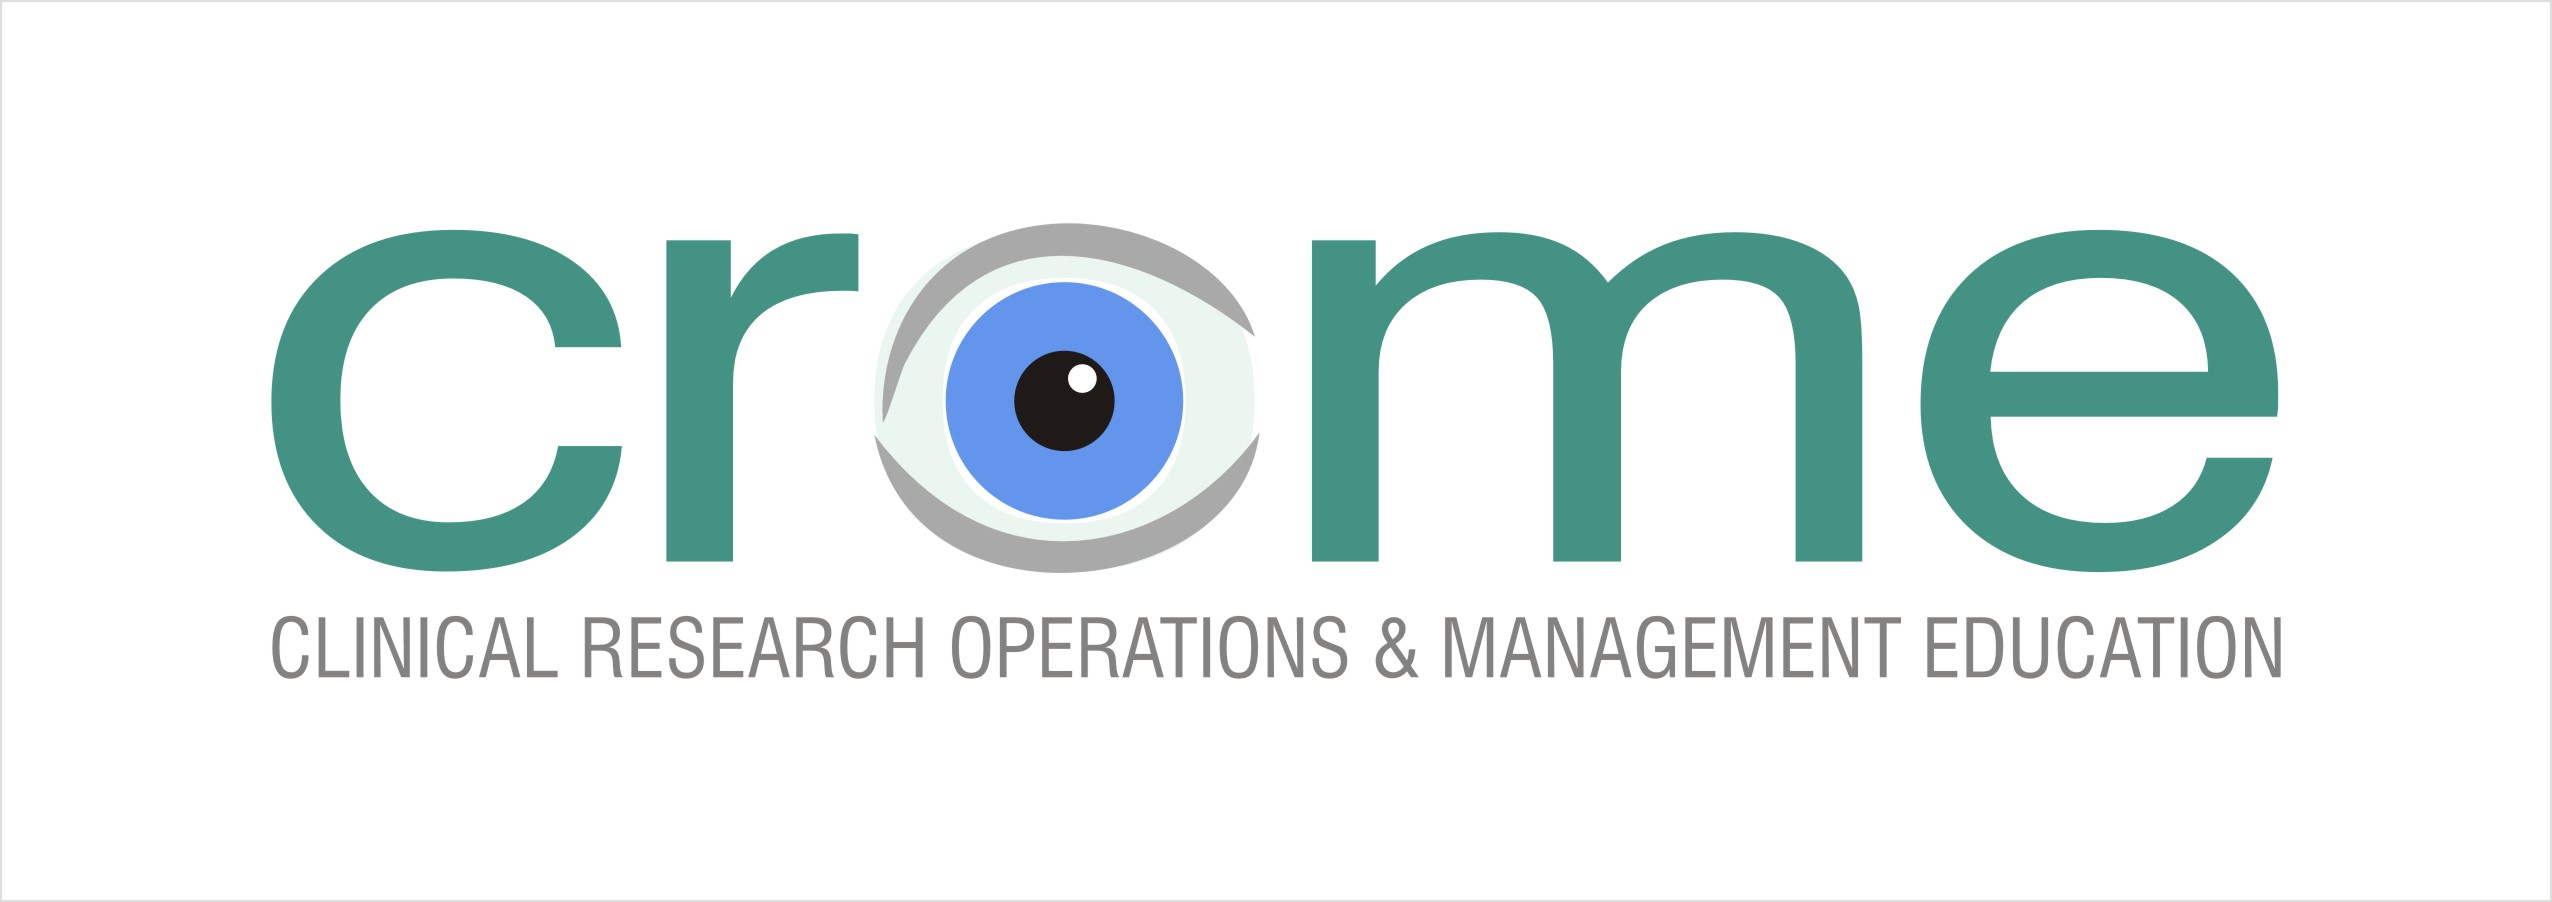 Clinical Research Operations & Management Education - CROME